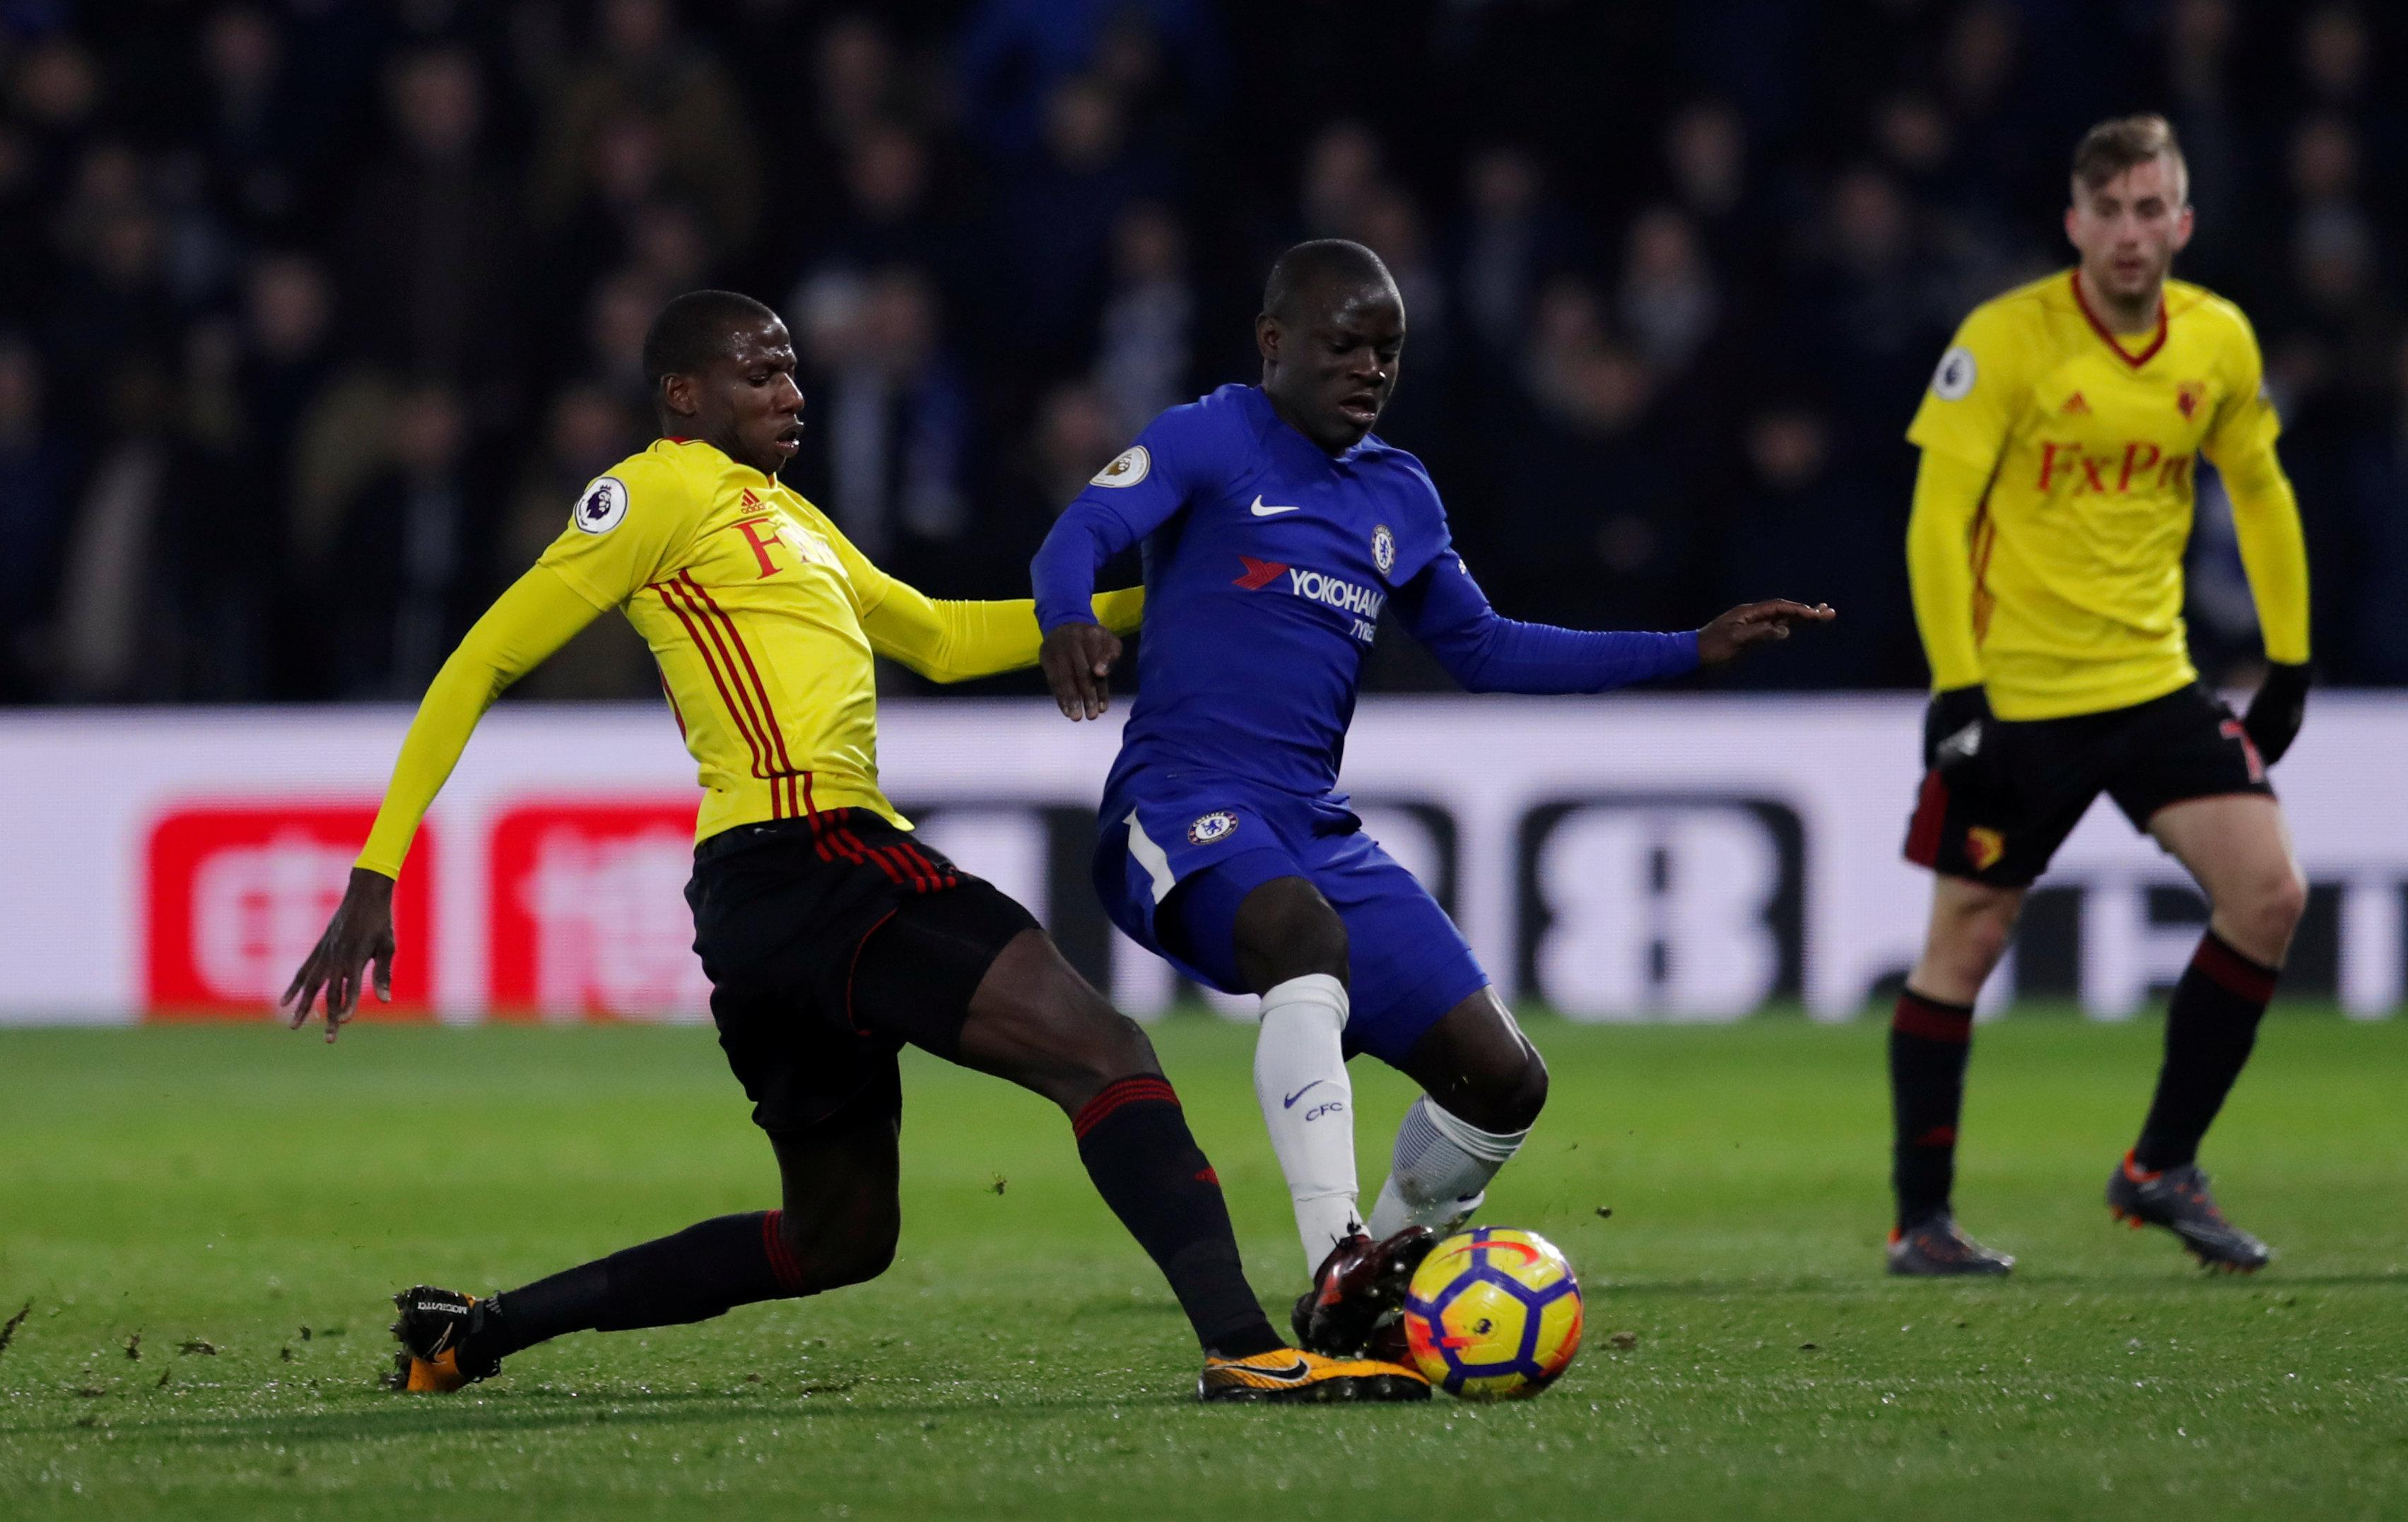 N'Golo Kante and Doucoure would be an imposing partnership